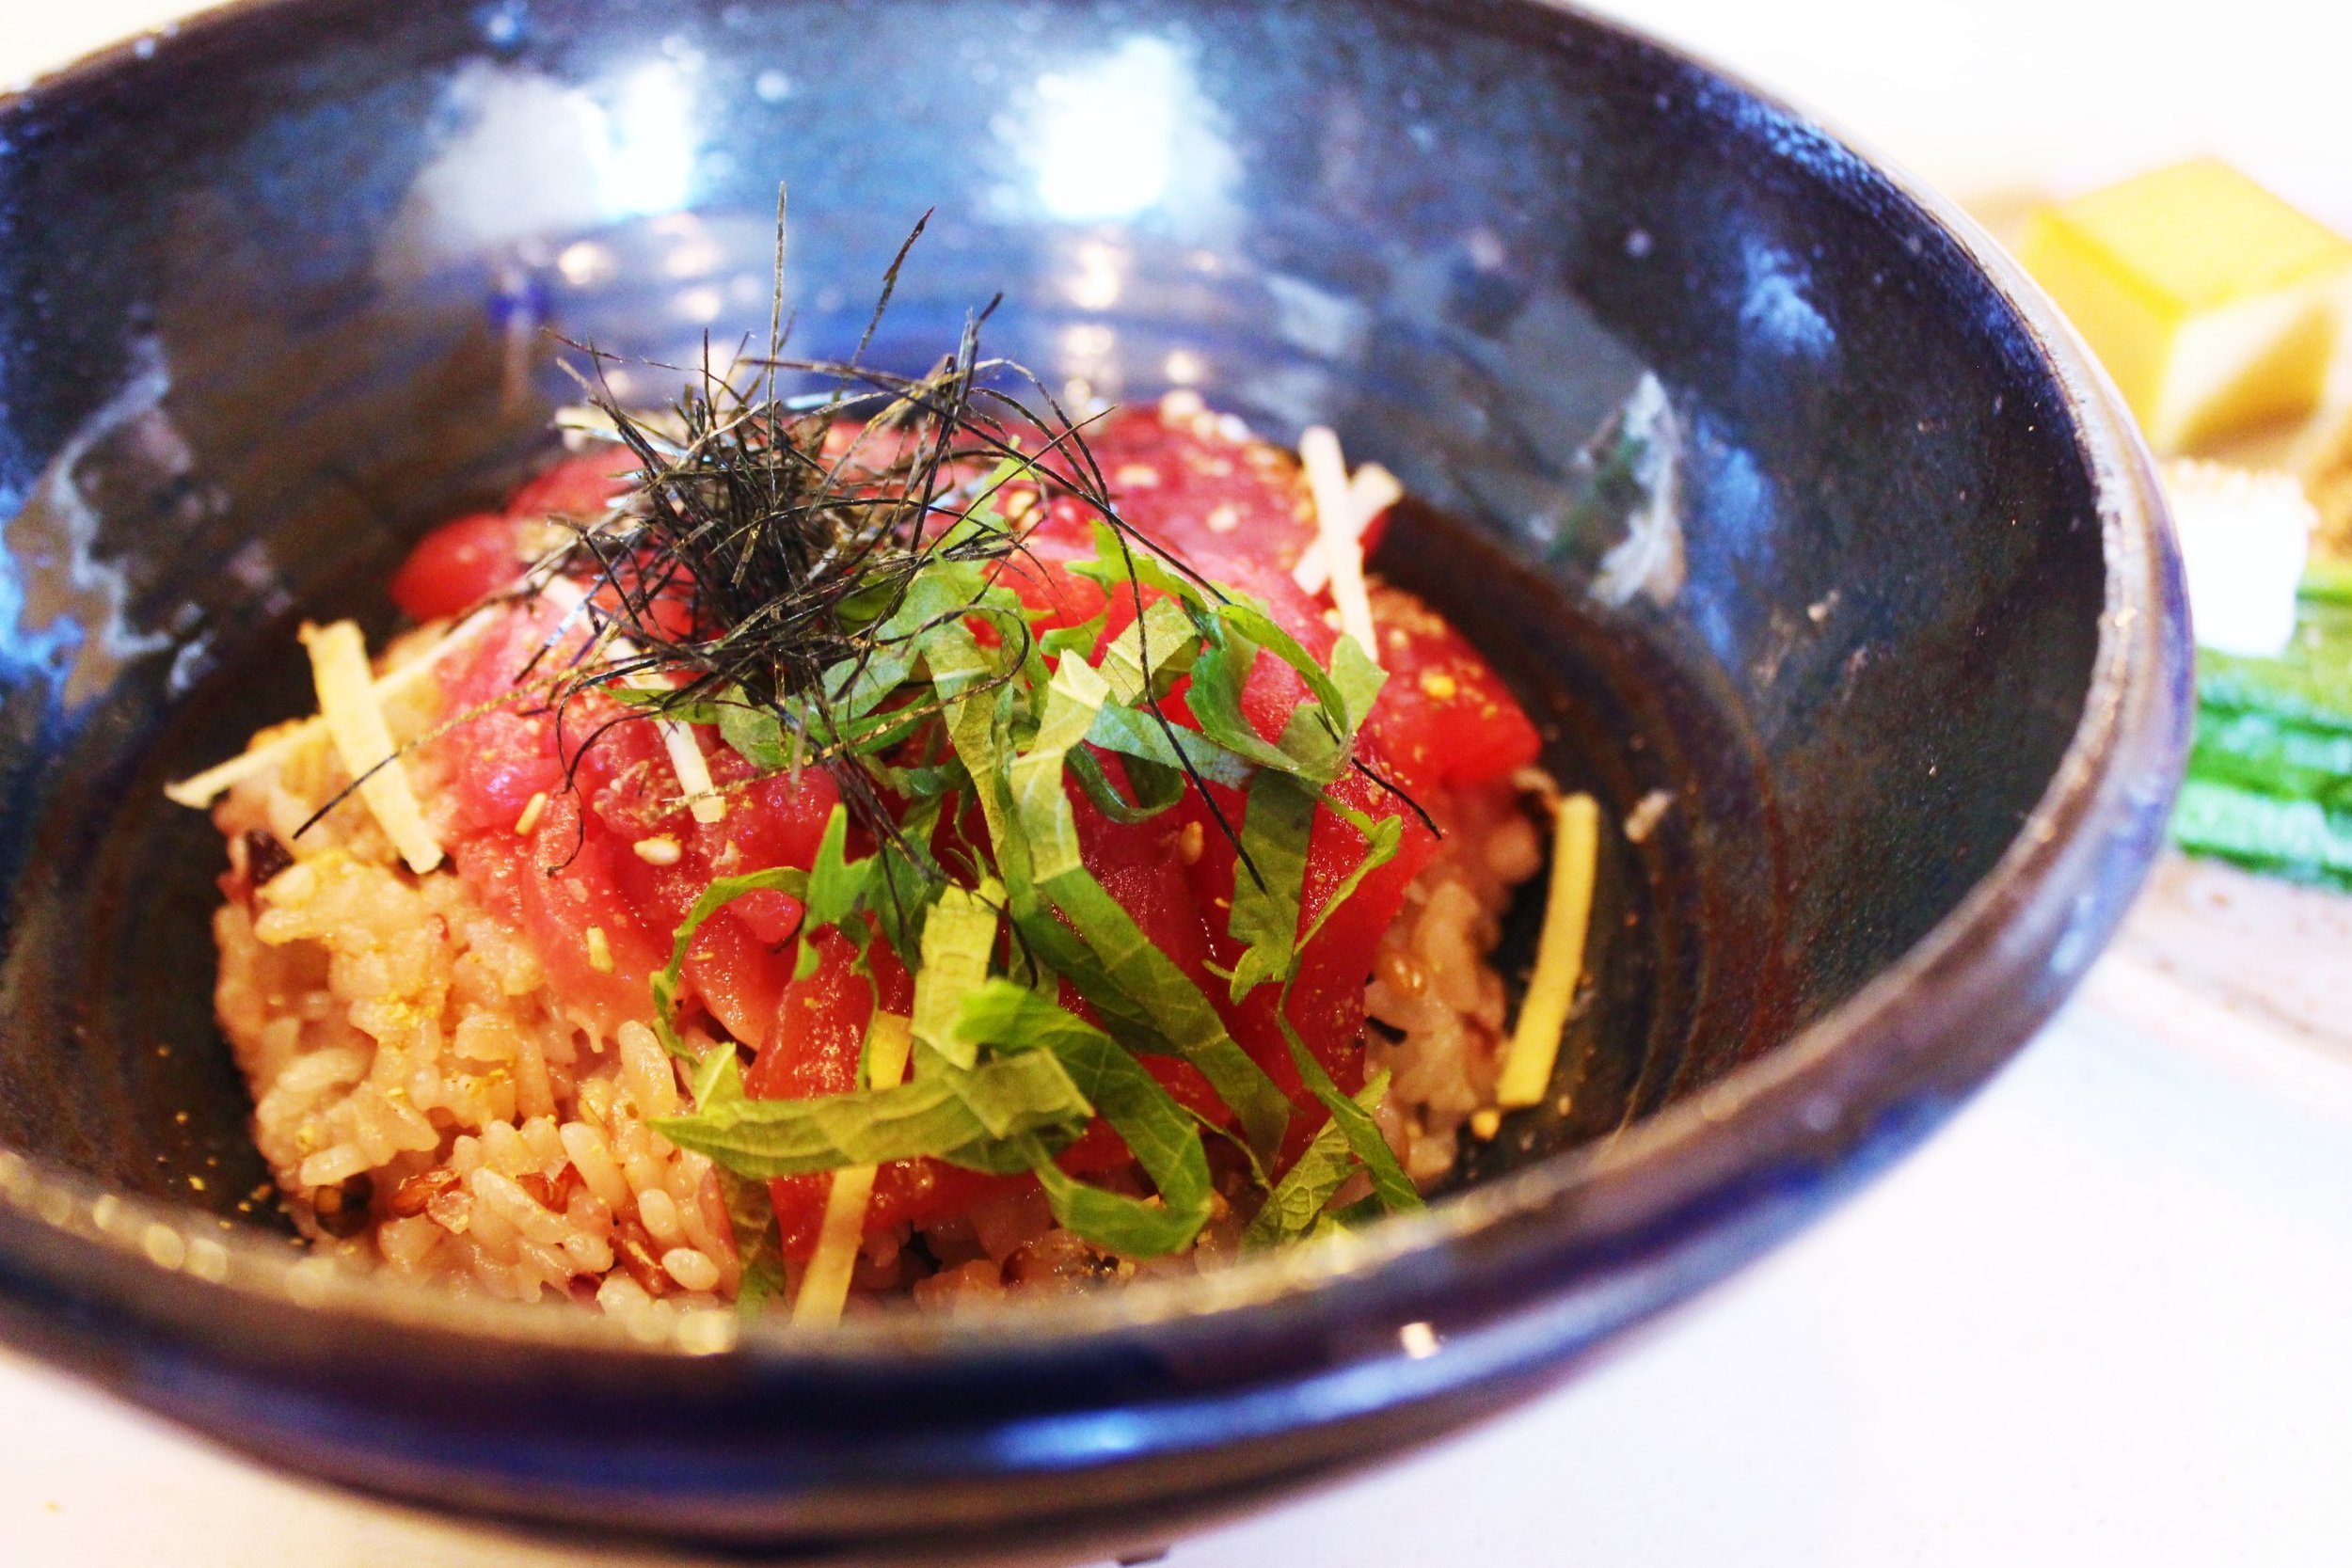 Wild Bluefin Tuna Donburi at Okonomi